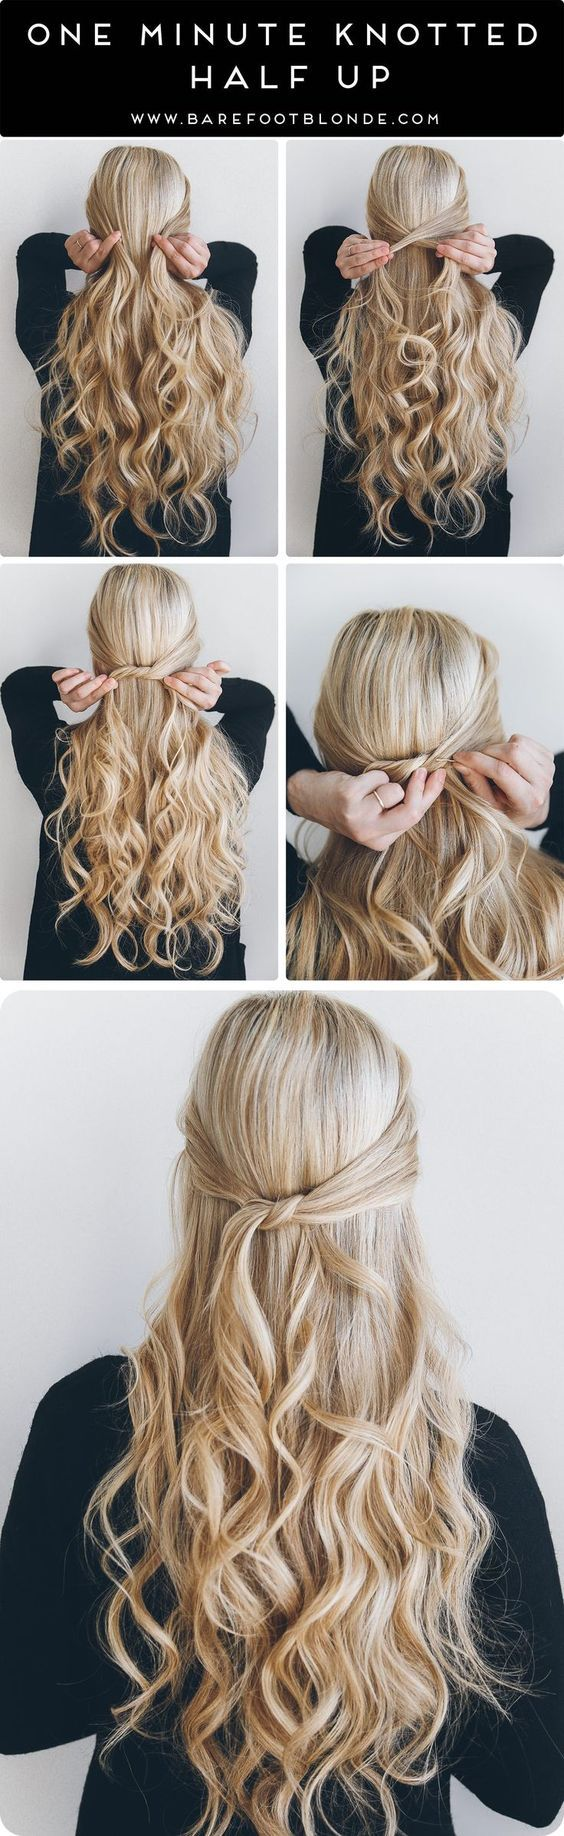 Kelly S Salon And Day Spa Prom Dress Hair Nails Gown Updo Shoes Jewelry Makeup Down Hairstyles For Long Hair Medium Hair Styles Long Hair Styles